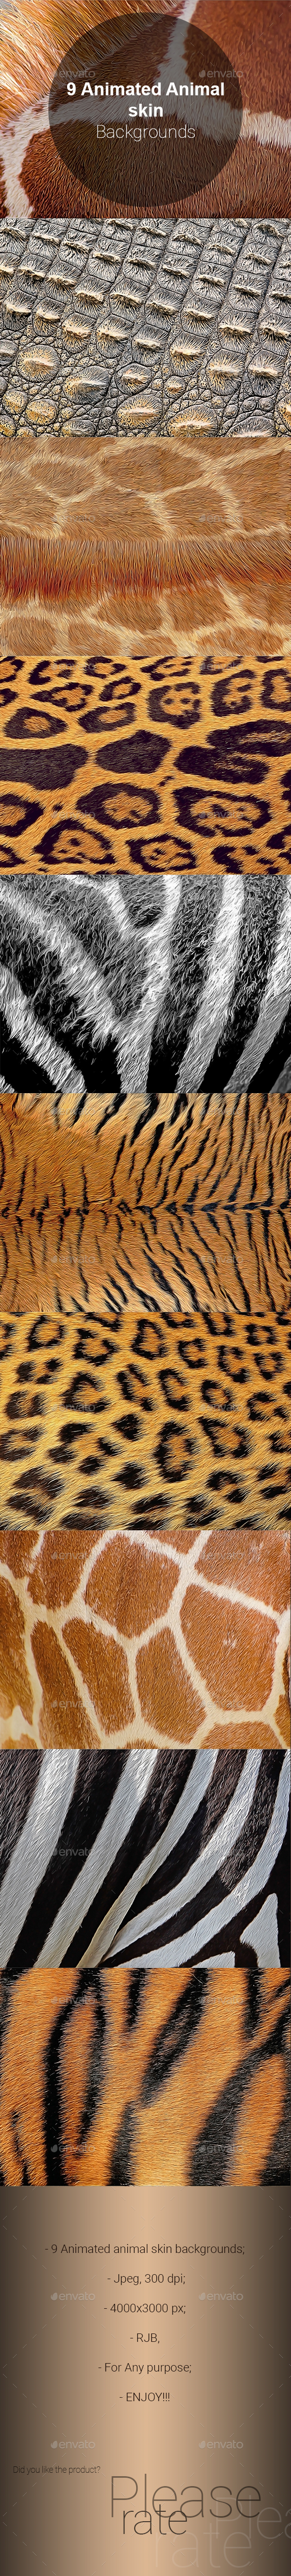 9 Animated Animal skin Backgrounds - Miscellaneous Backgrounds